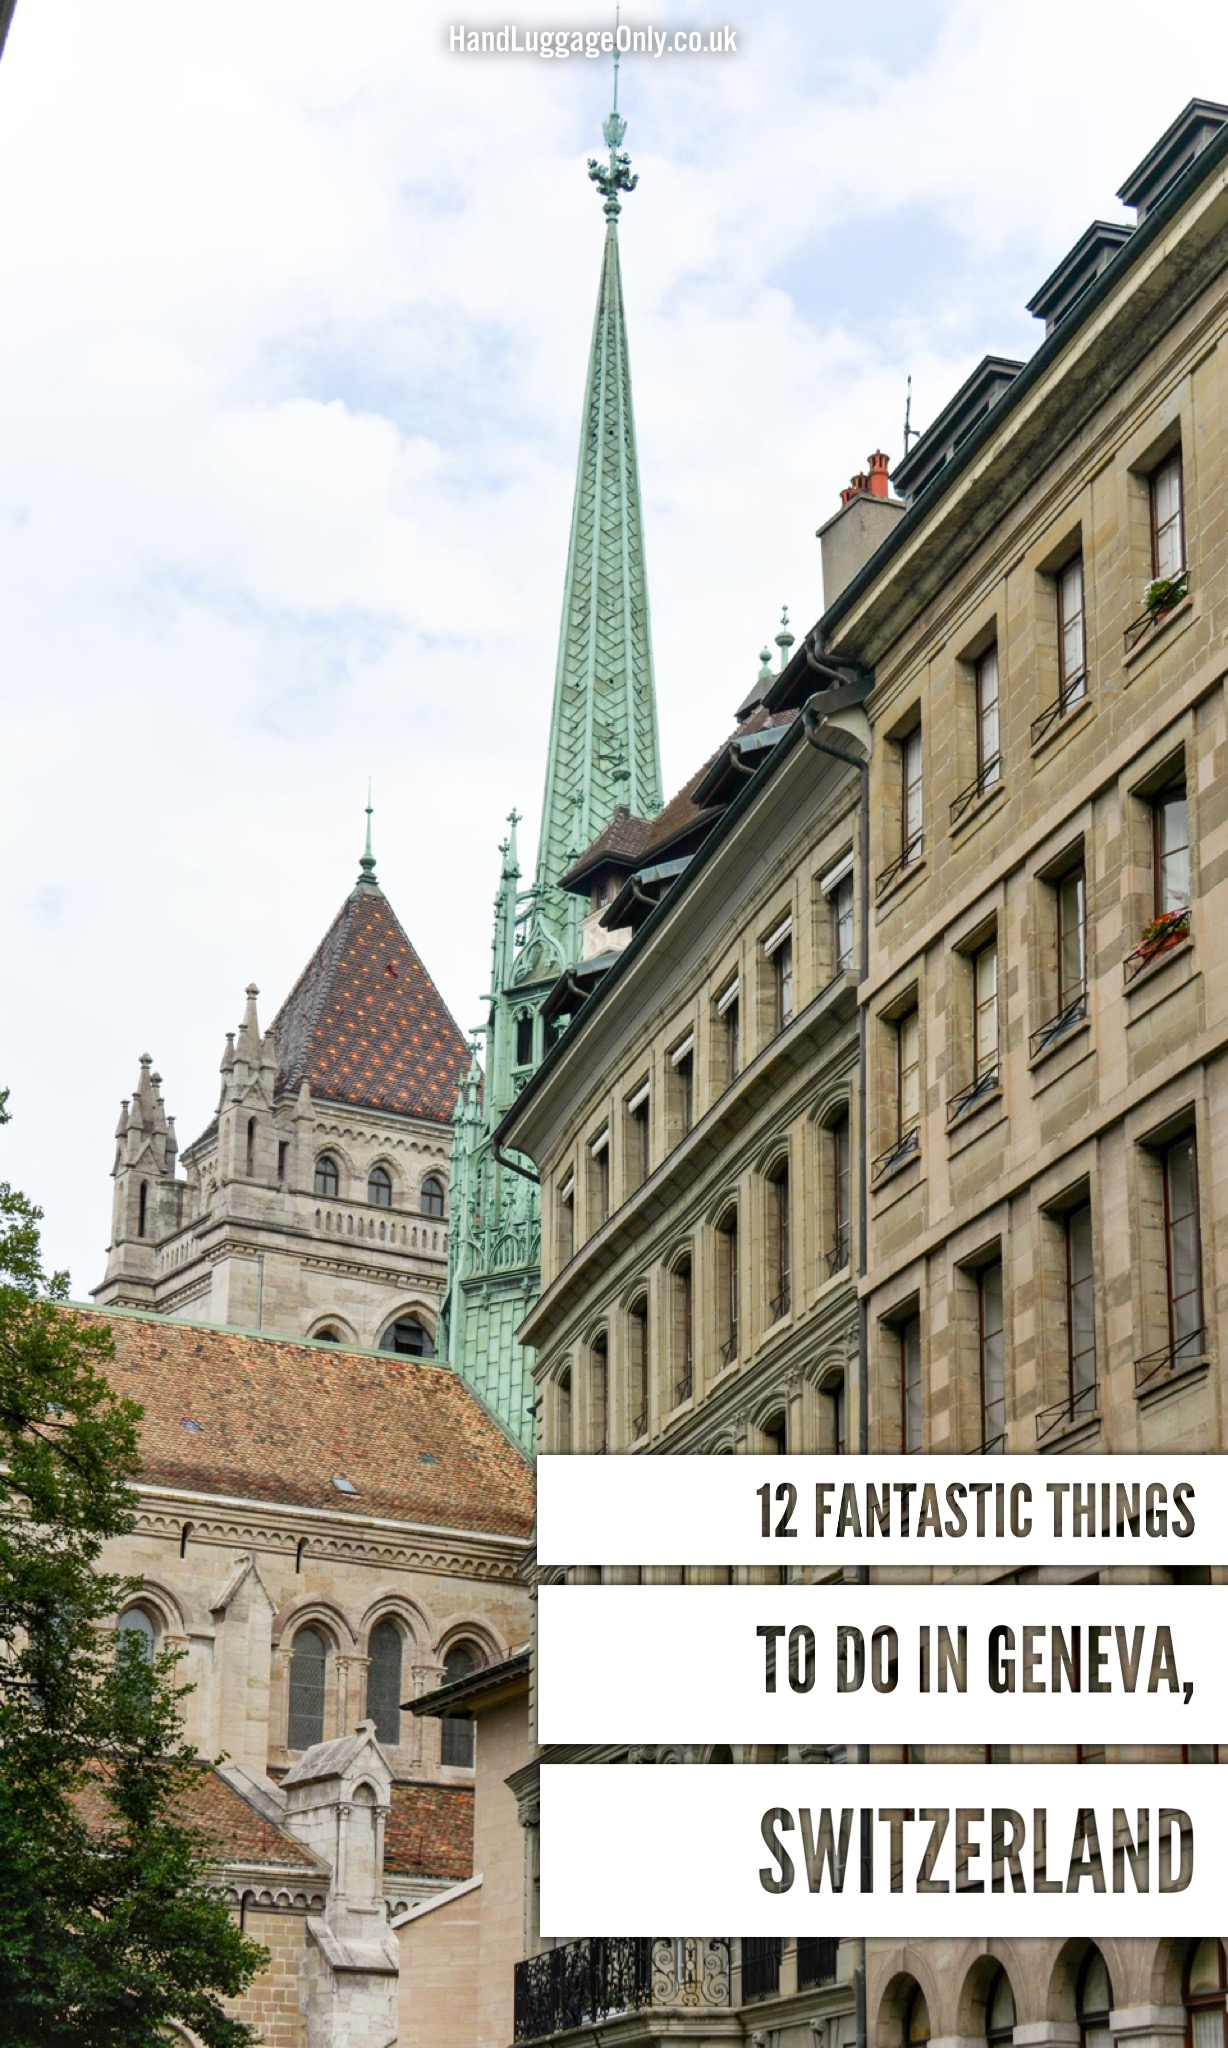 12 Fantastic Things To Do In Geneva, Switzerland